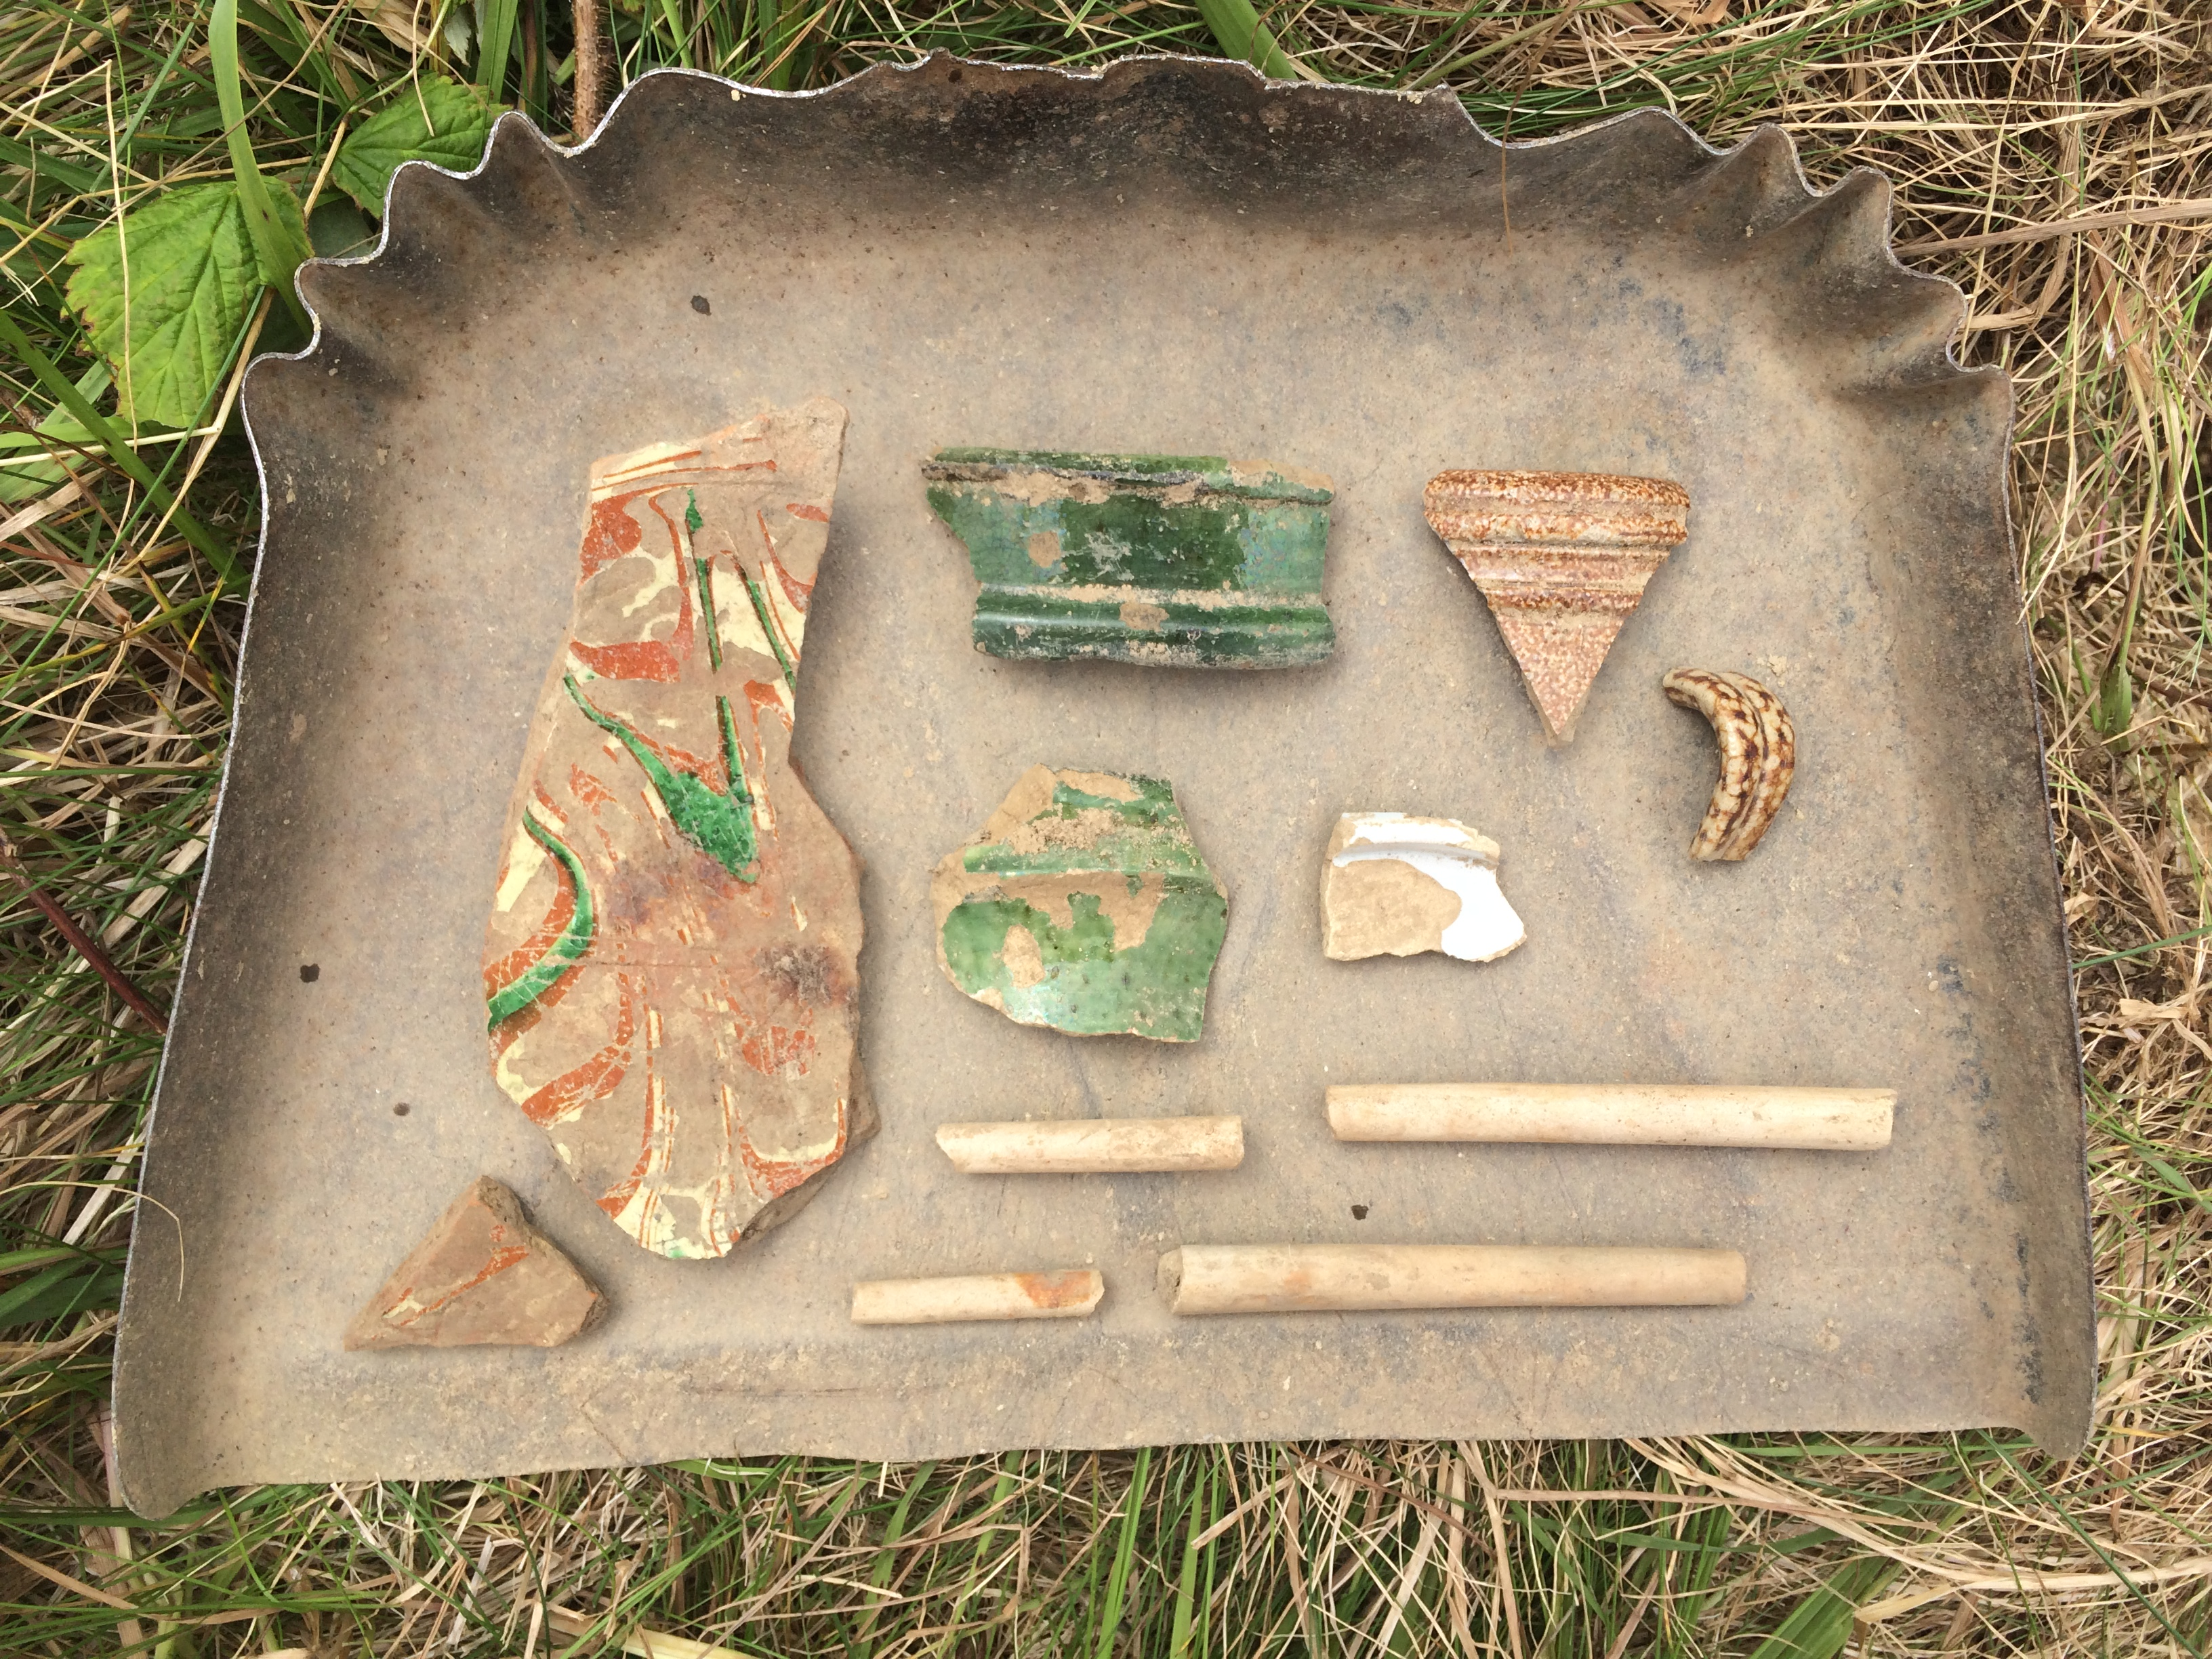 17th century artifacts: Italian marbled slipware, Saintonge coarse earthenware, Bellarmine stoneware, tin-glazed earthernware, and pipe stem fragments.